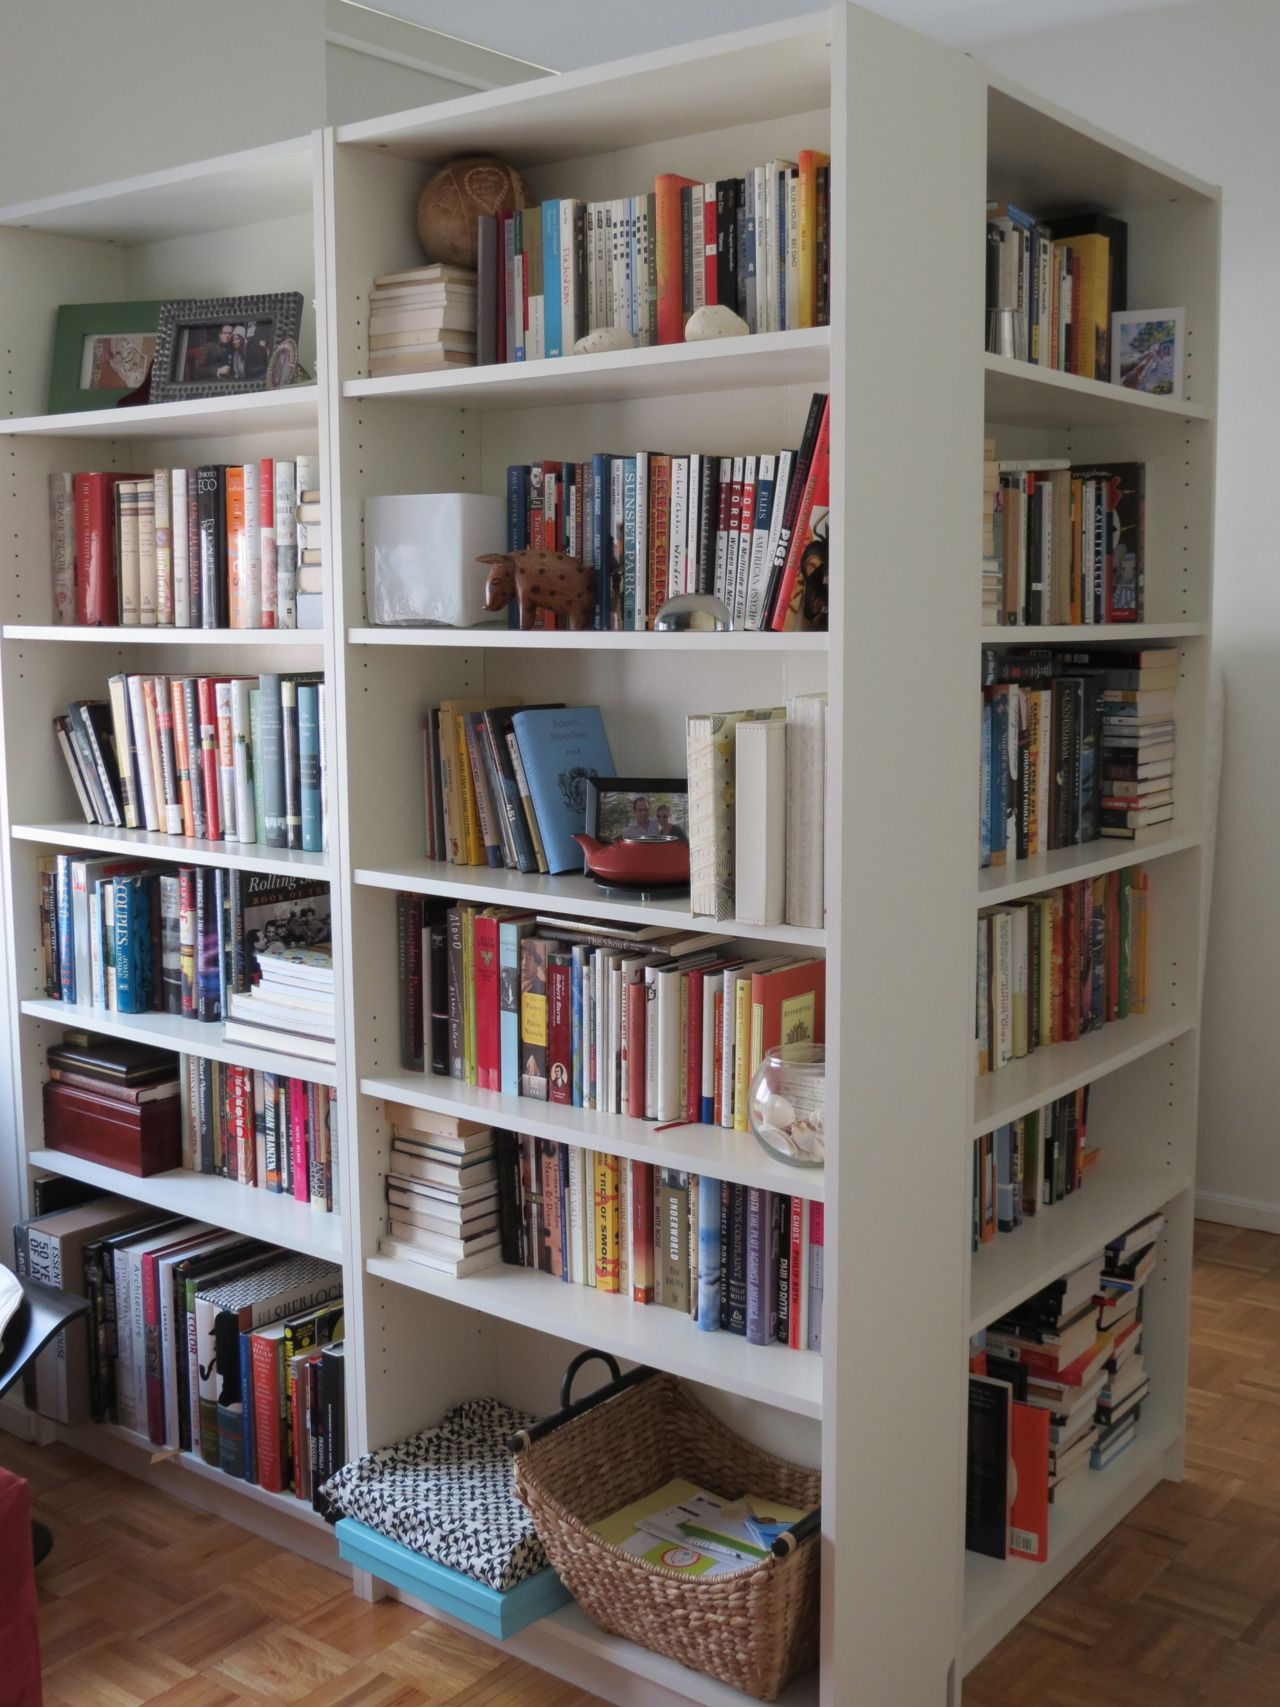 Bookshelves My Wife And I Are About To Welcome Room Divider Bookcase Bookshelf Room Divider Room Divider Shelves Bookshelf room divider with door